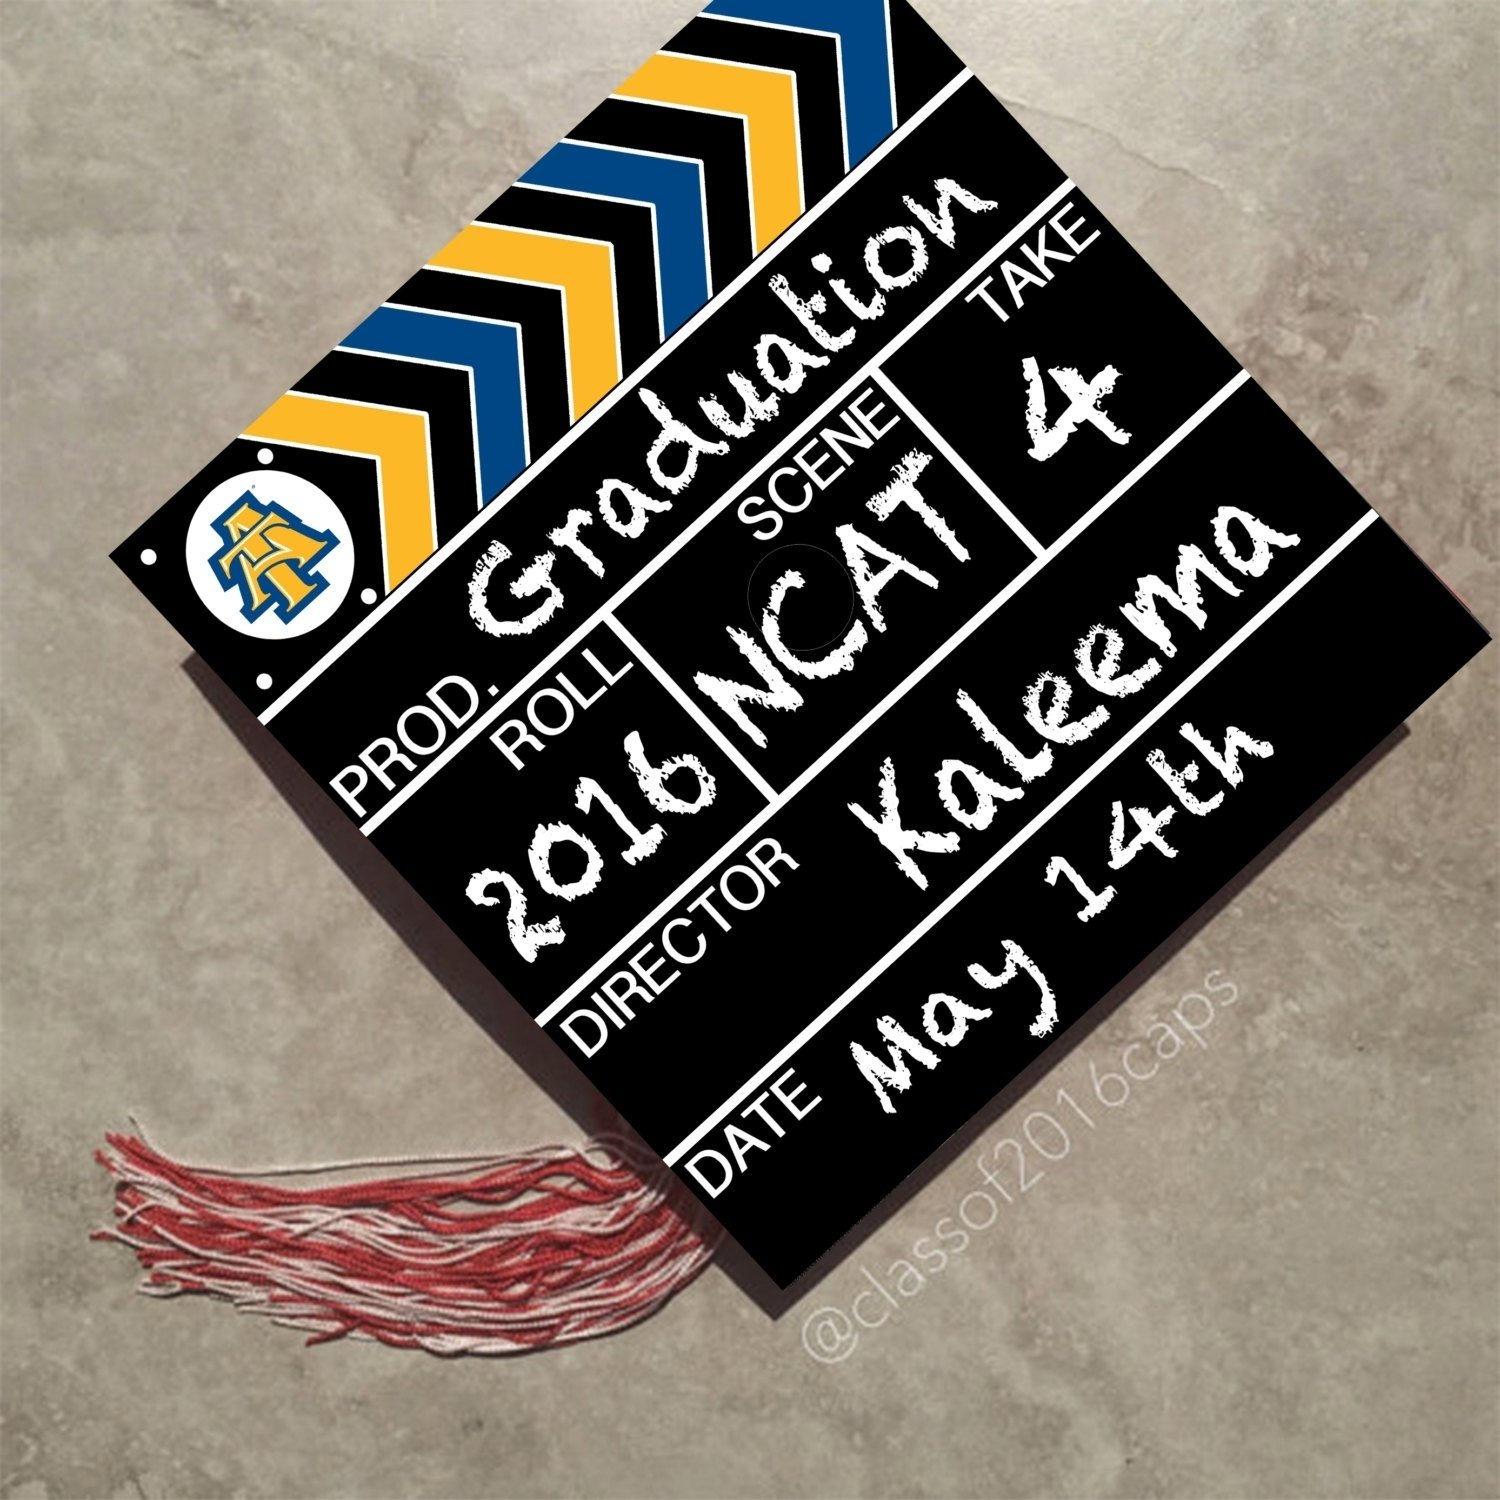 10 unique high school graduation cap ideas